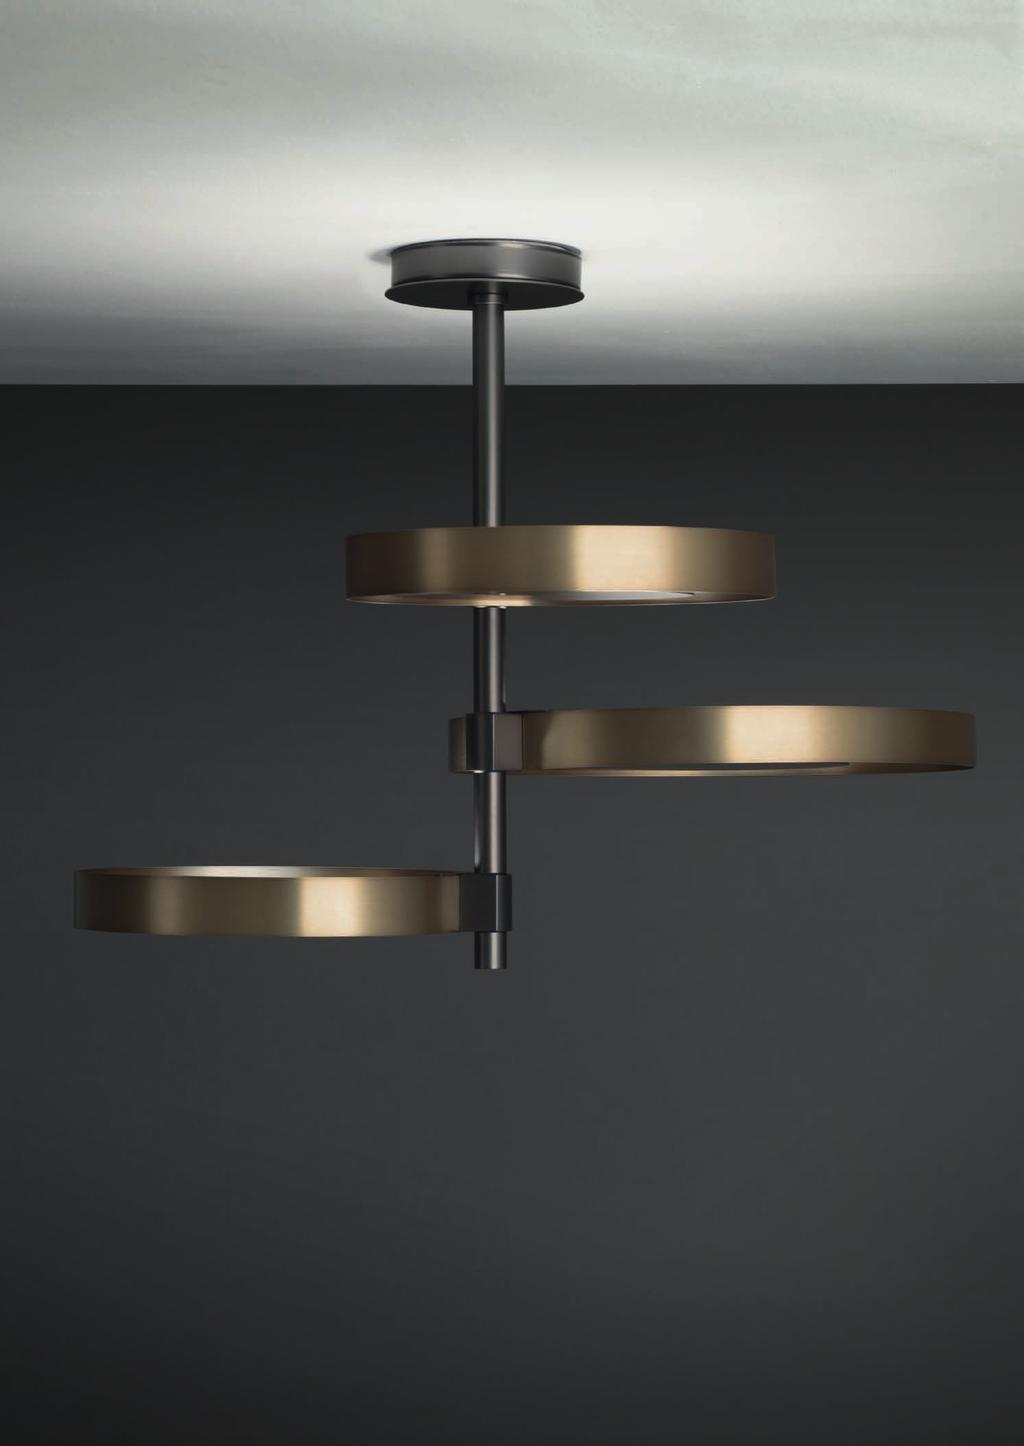 CIRCLE CEILING 45cm-17 7 Ø 58cm-22 8 Ceiling lamp with indirect light, satinated natural brass rings and matte black nickel central